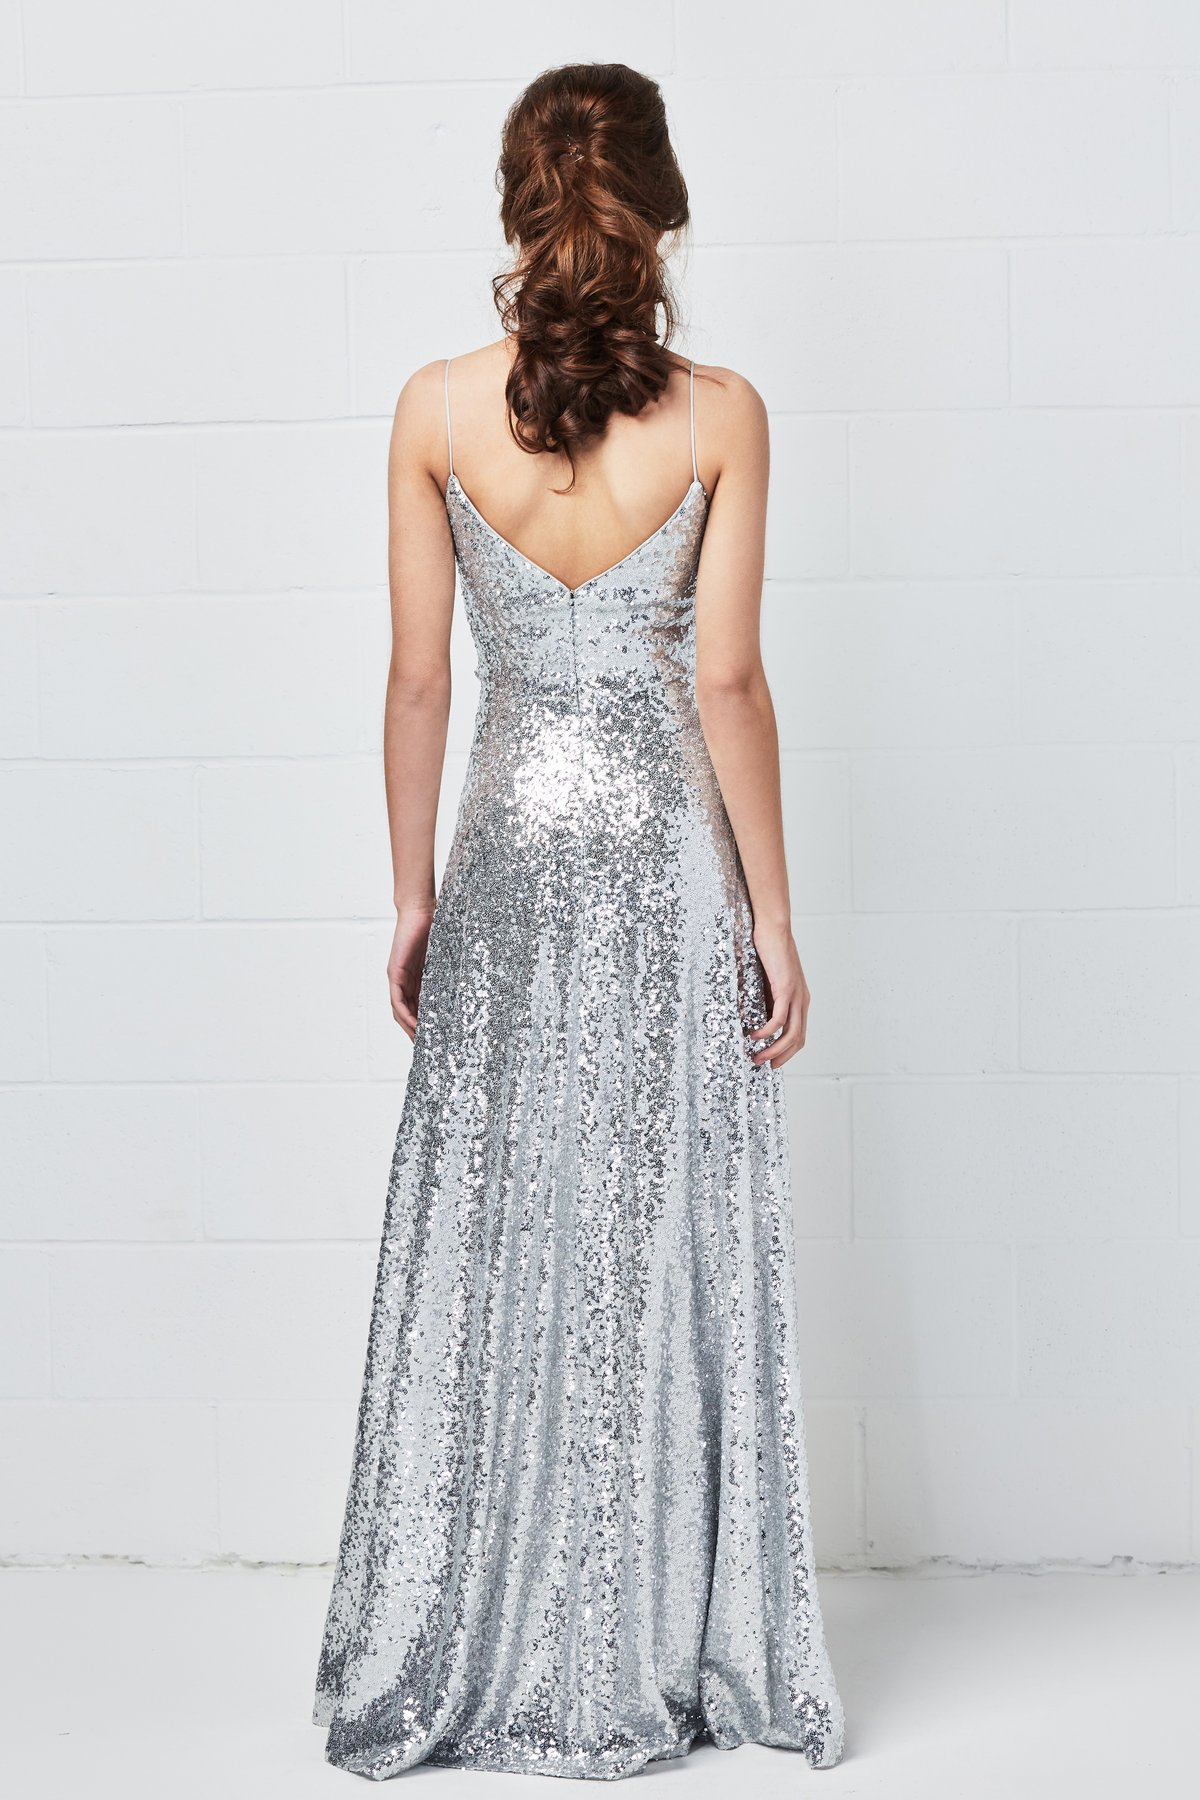 Back of Anzen style by Watters Bridesmaids in sequin